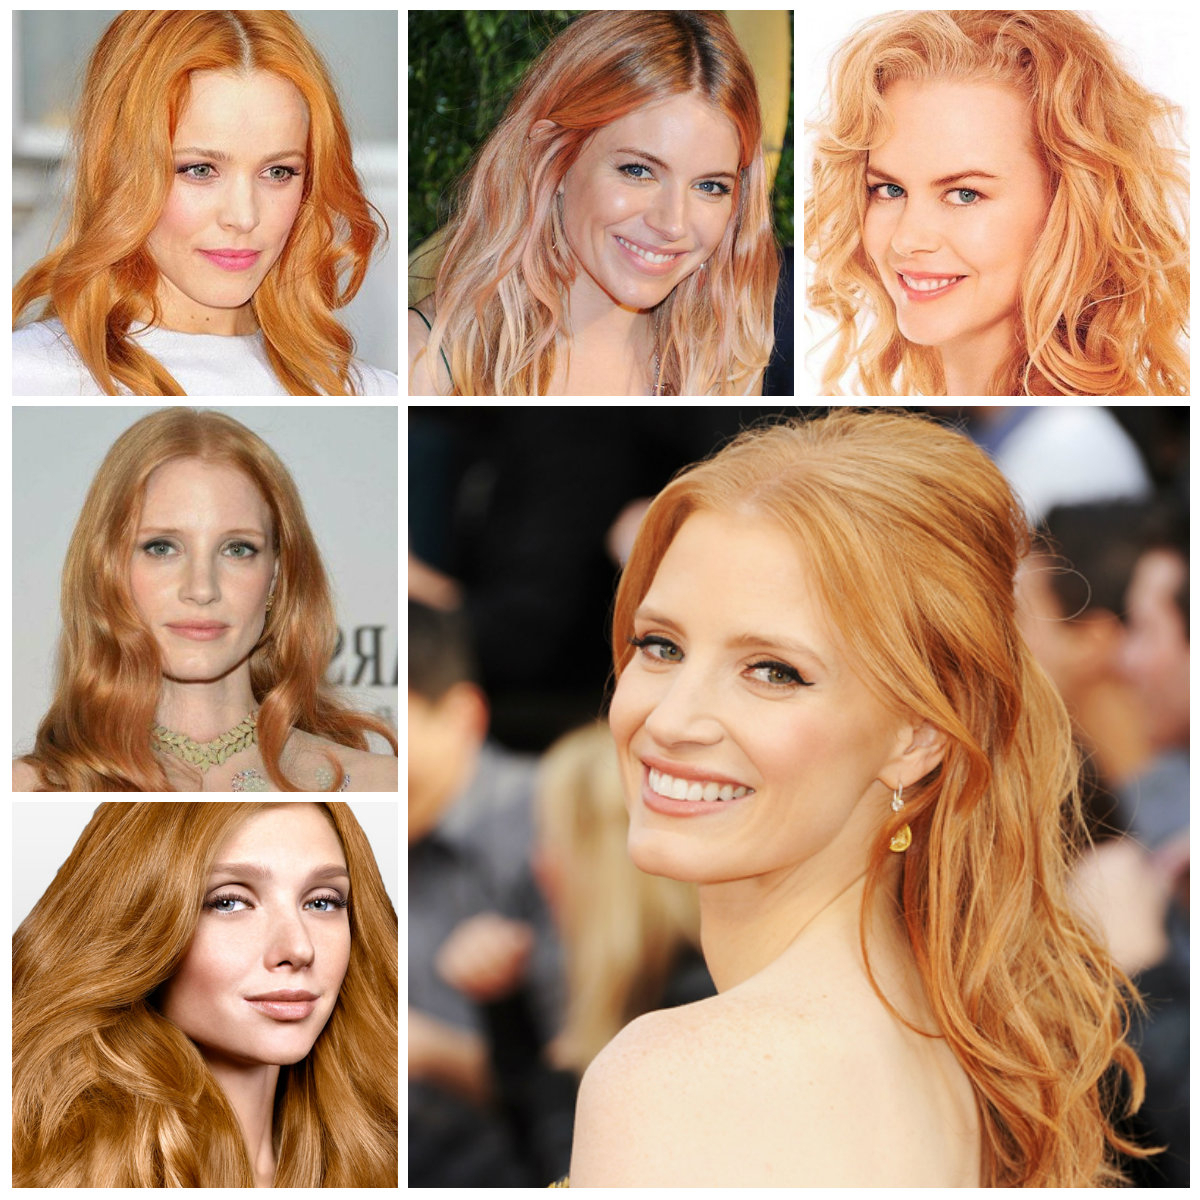 Strawberry Blonde Hair Colors For 2019 | Hairstyles For Women 2019 Throughout Strawberry Blonde Short Hairstyles (View 21 of 25)